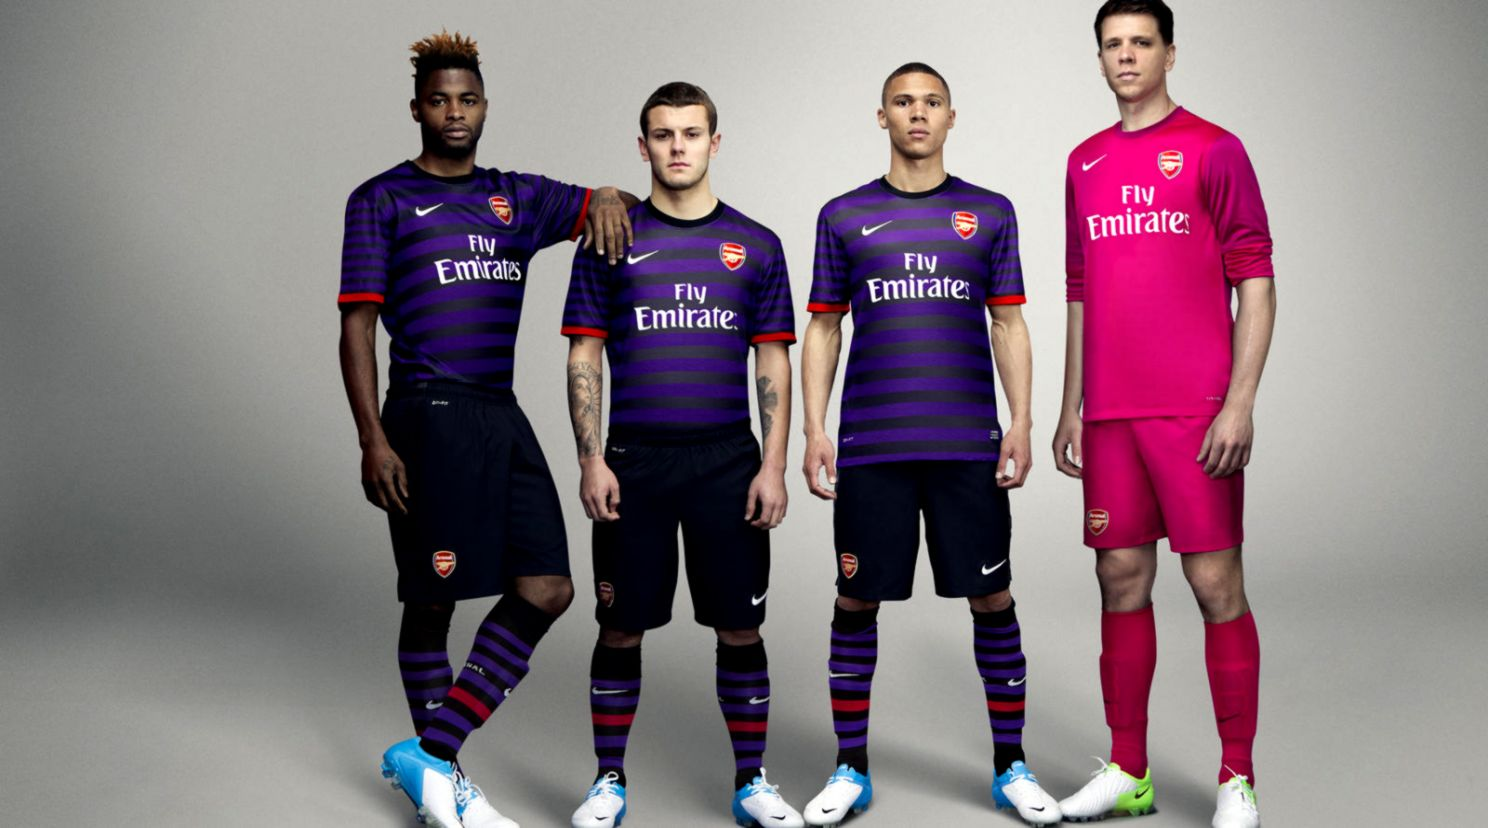 e07e5ca2d arsenal fc kit on sale OFF69% Discounts